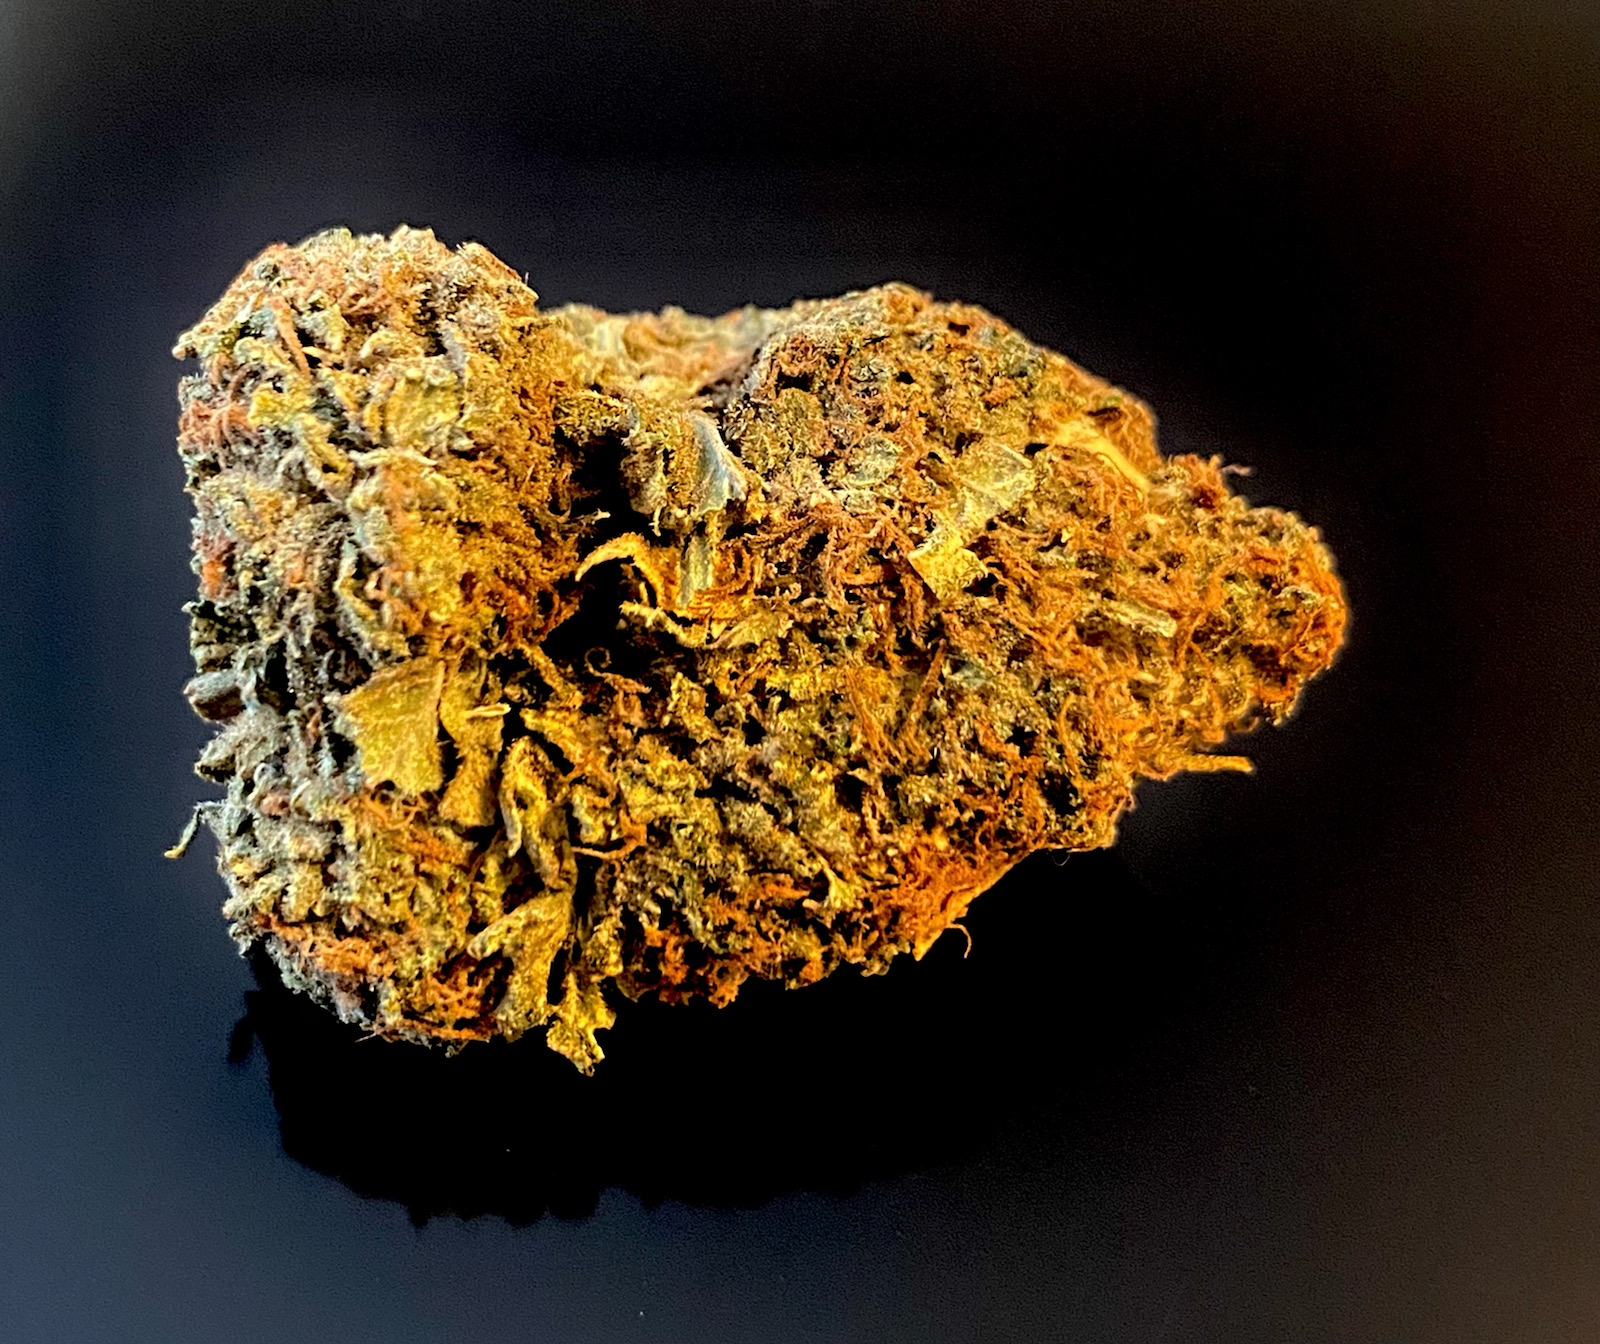 New! WHITE GOLD - 25% THC - Special Priced $125 Oz!